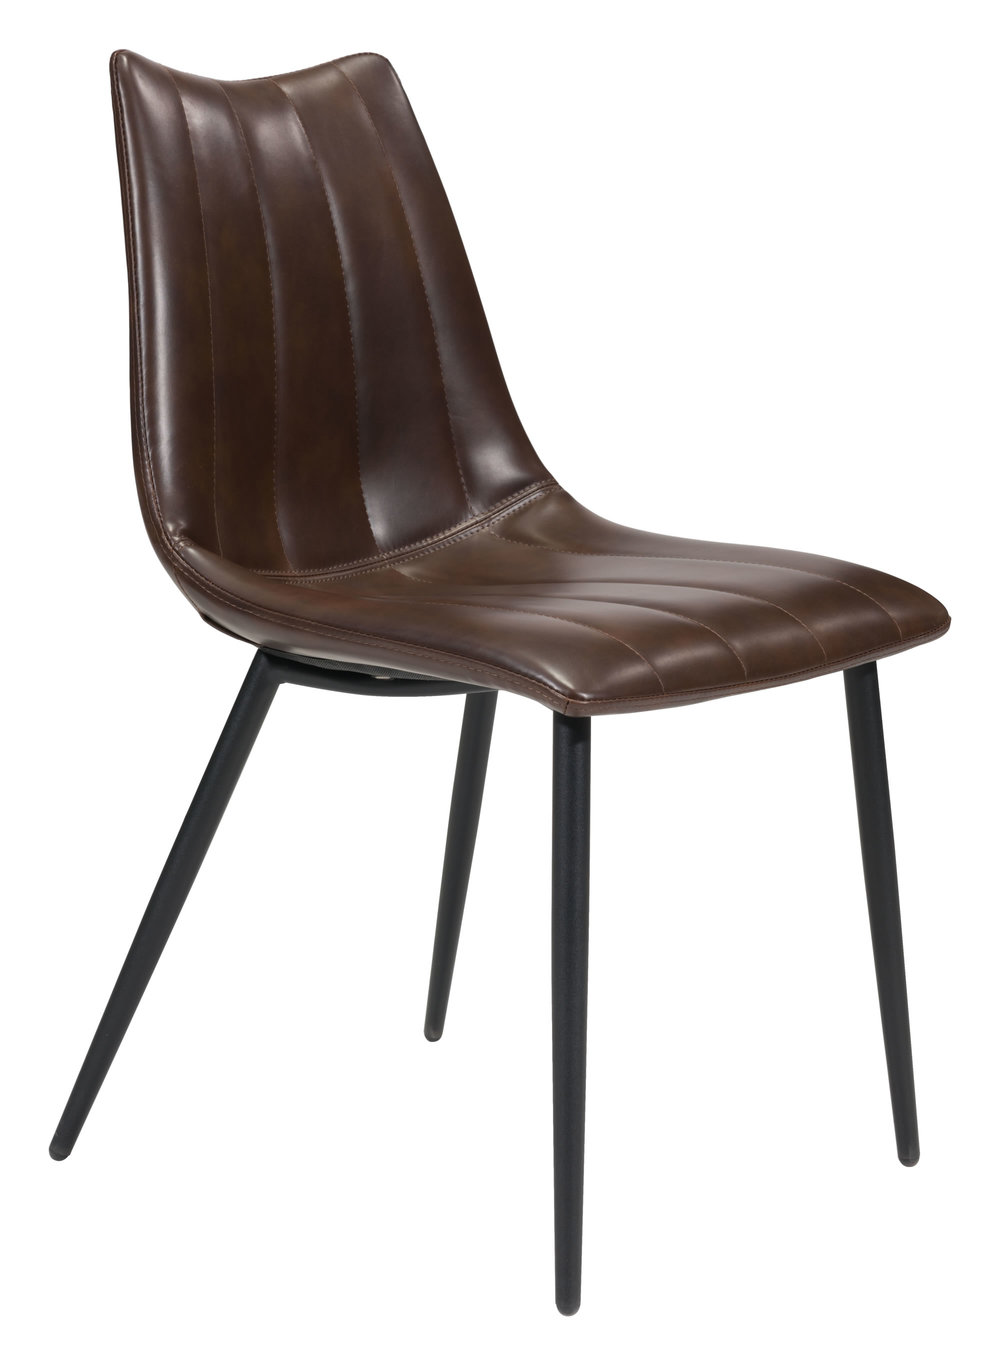 ZUO MODERN CONTEMPORARY, INC - Norwich Dining Chair - Set of 2 - Brown